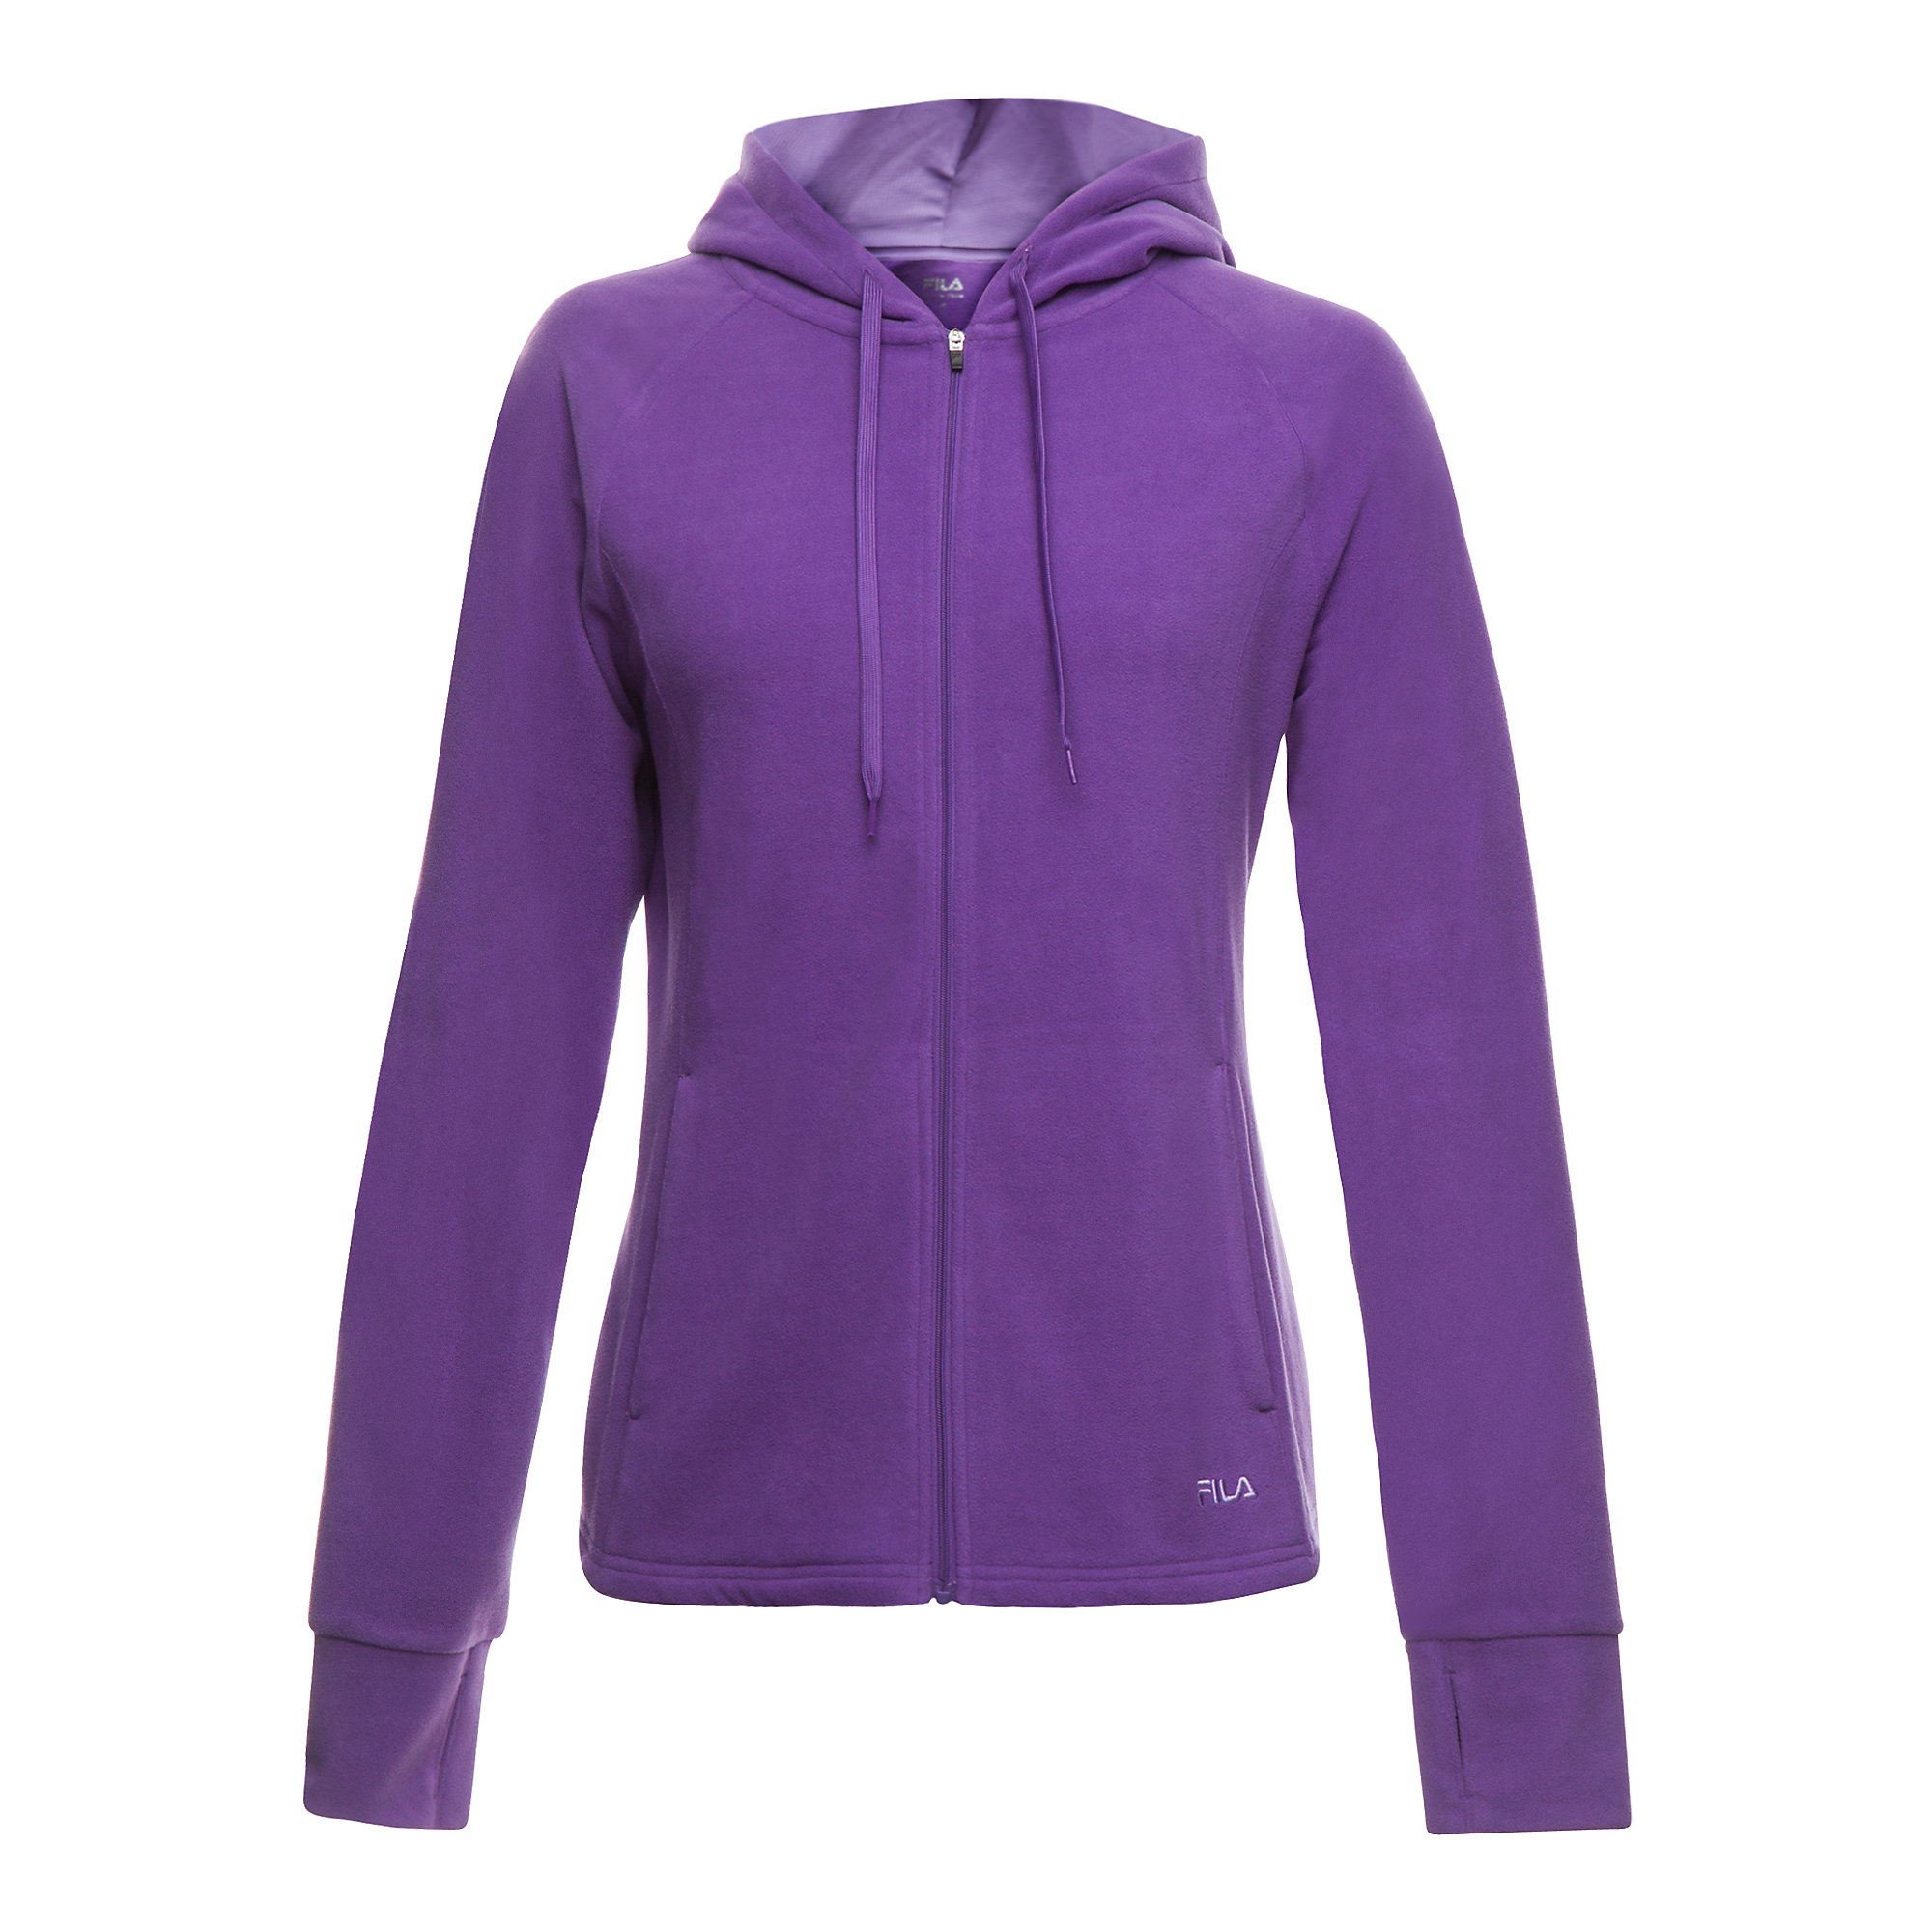 Fila clothing for women